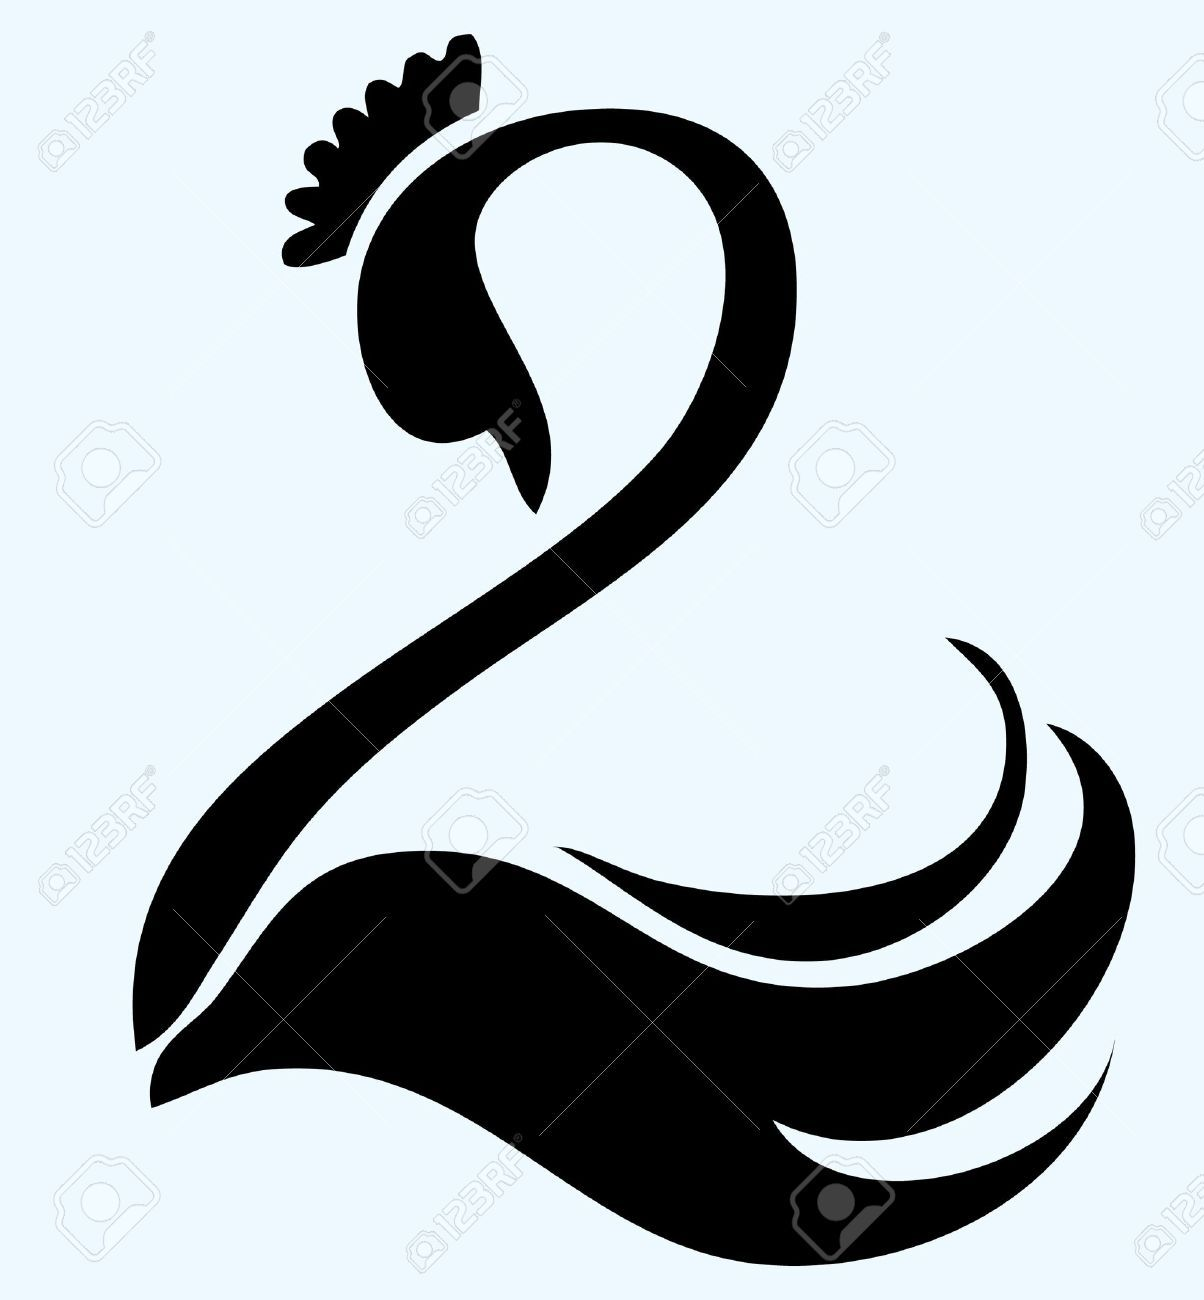 Swan Stock Vector Illustration And Royalty Free Swan Clipart.